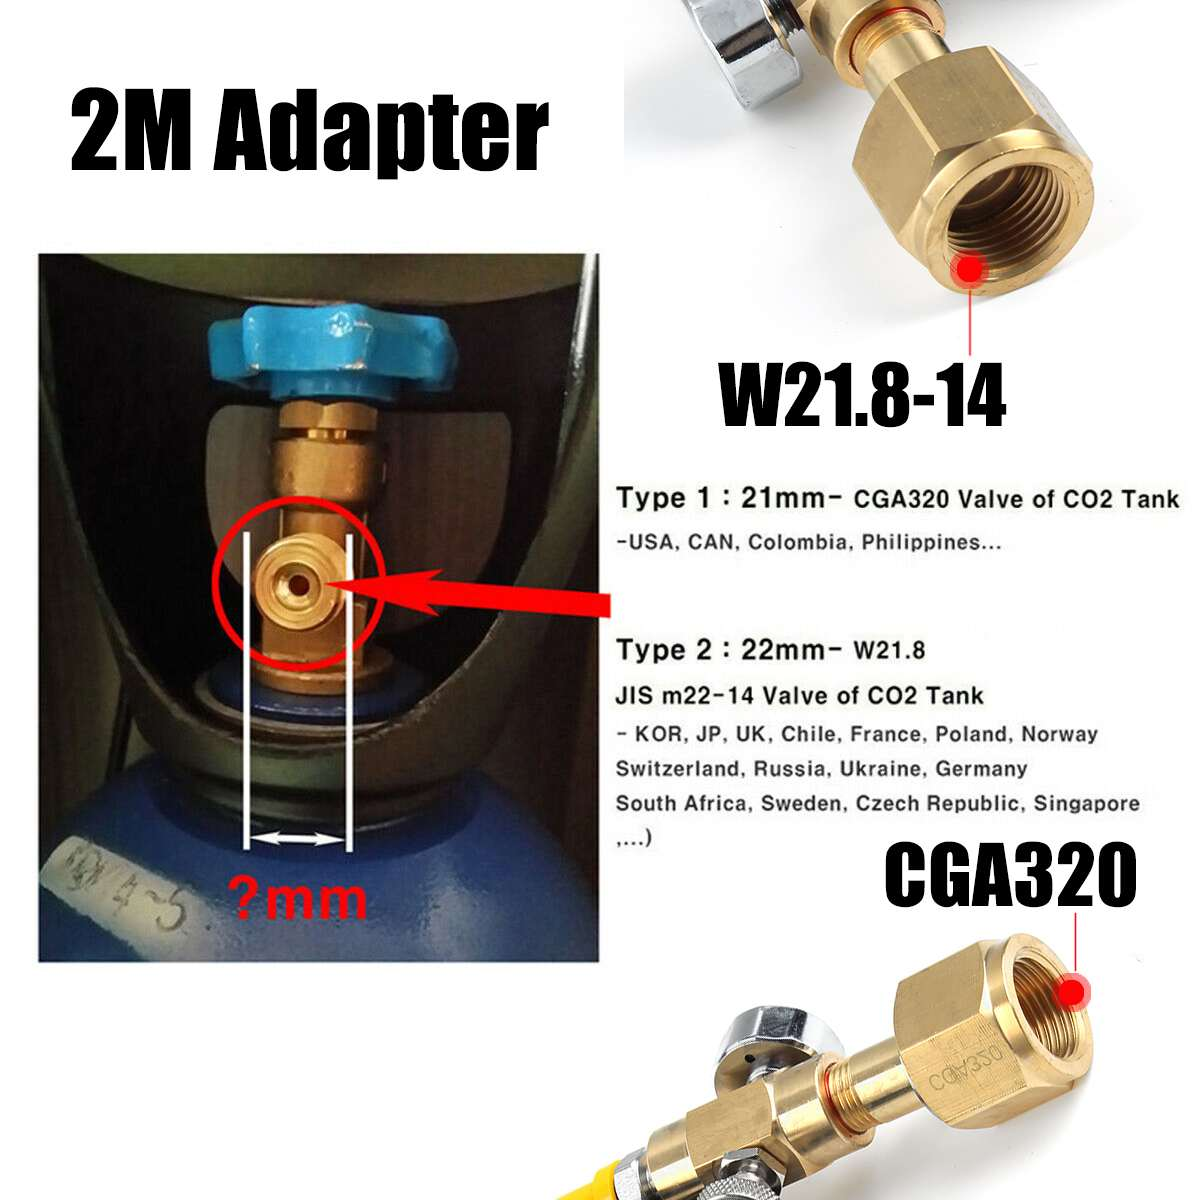 Soda Club External Hose 2M Adapter Gauge to CO2 Tank Home Soda Maker W21.8-14 Or CGA320 for Fizzi Sparkling Water